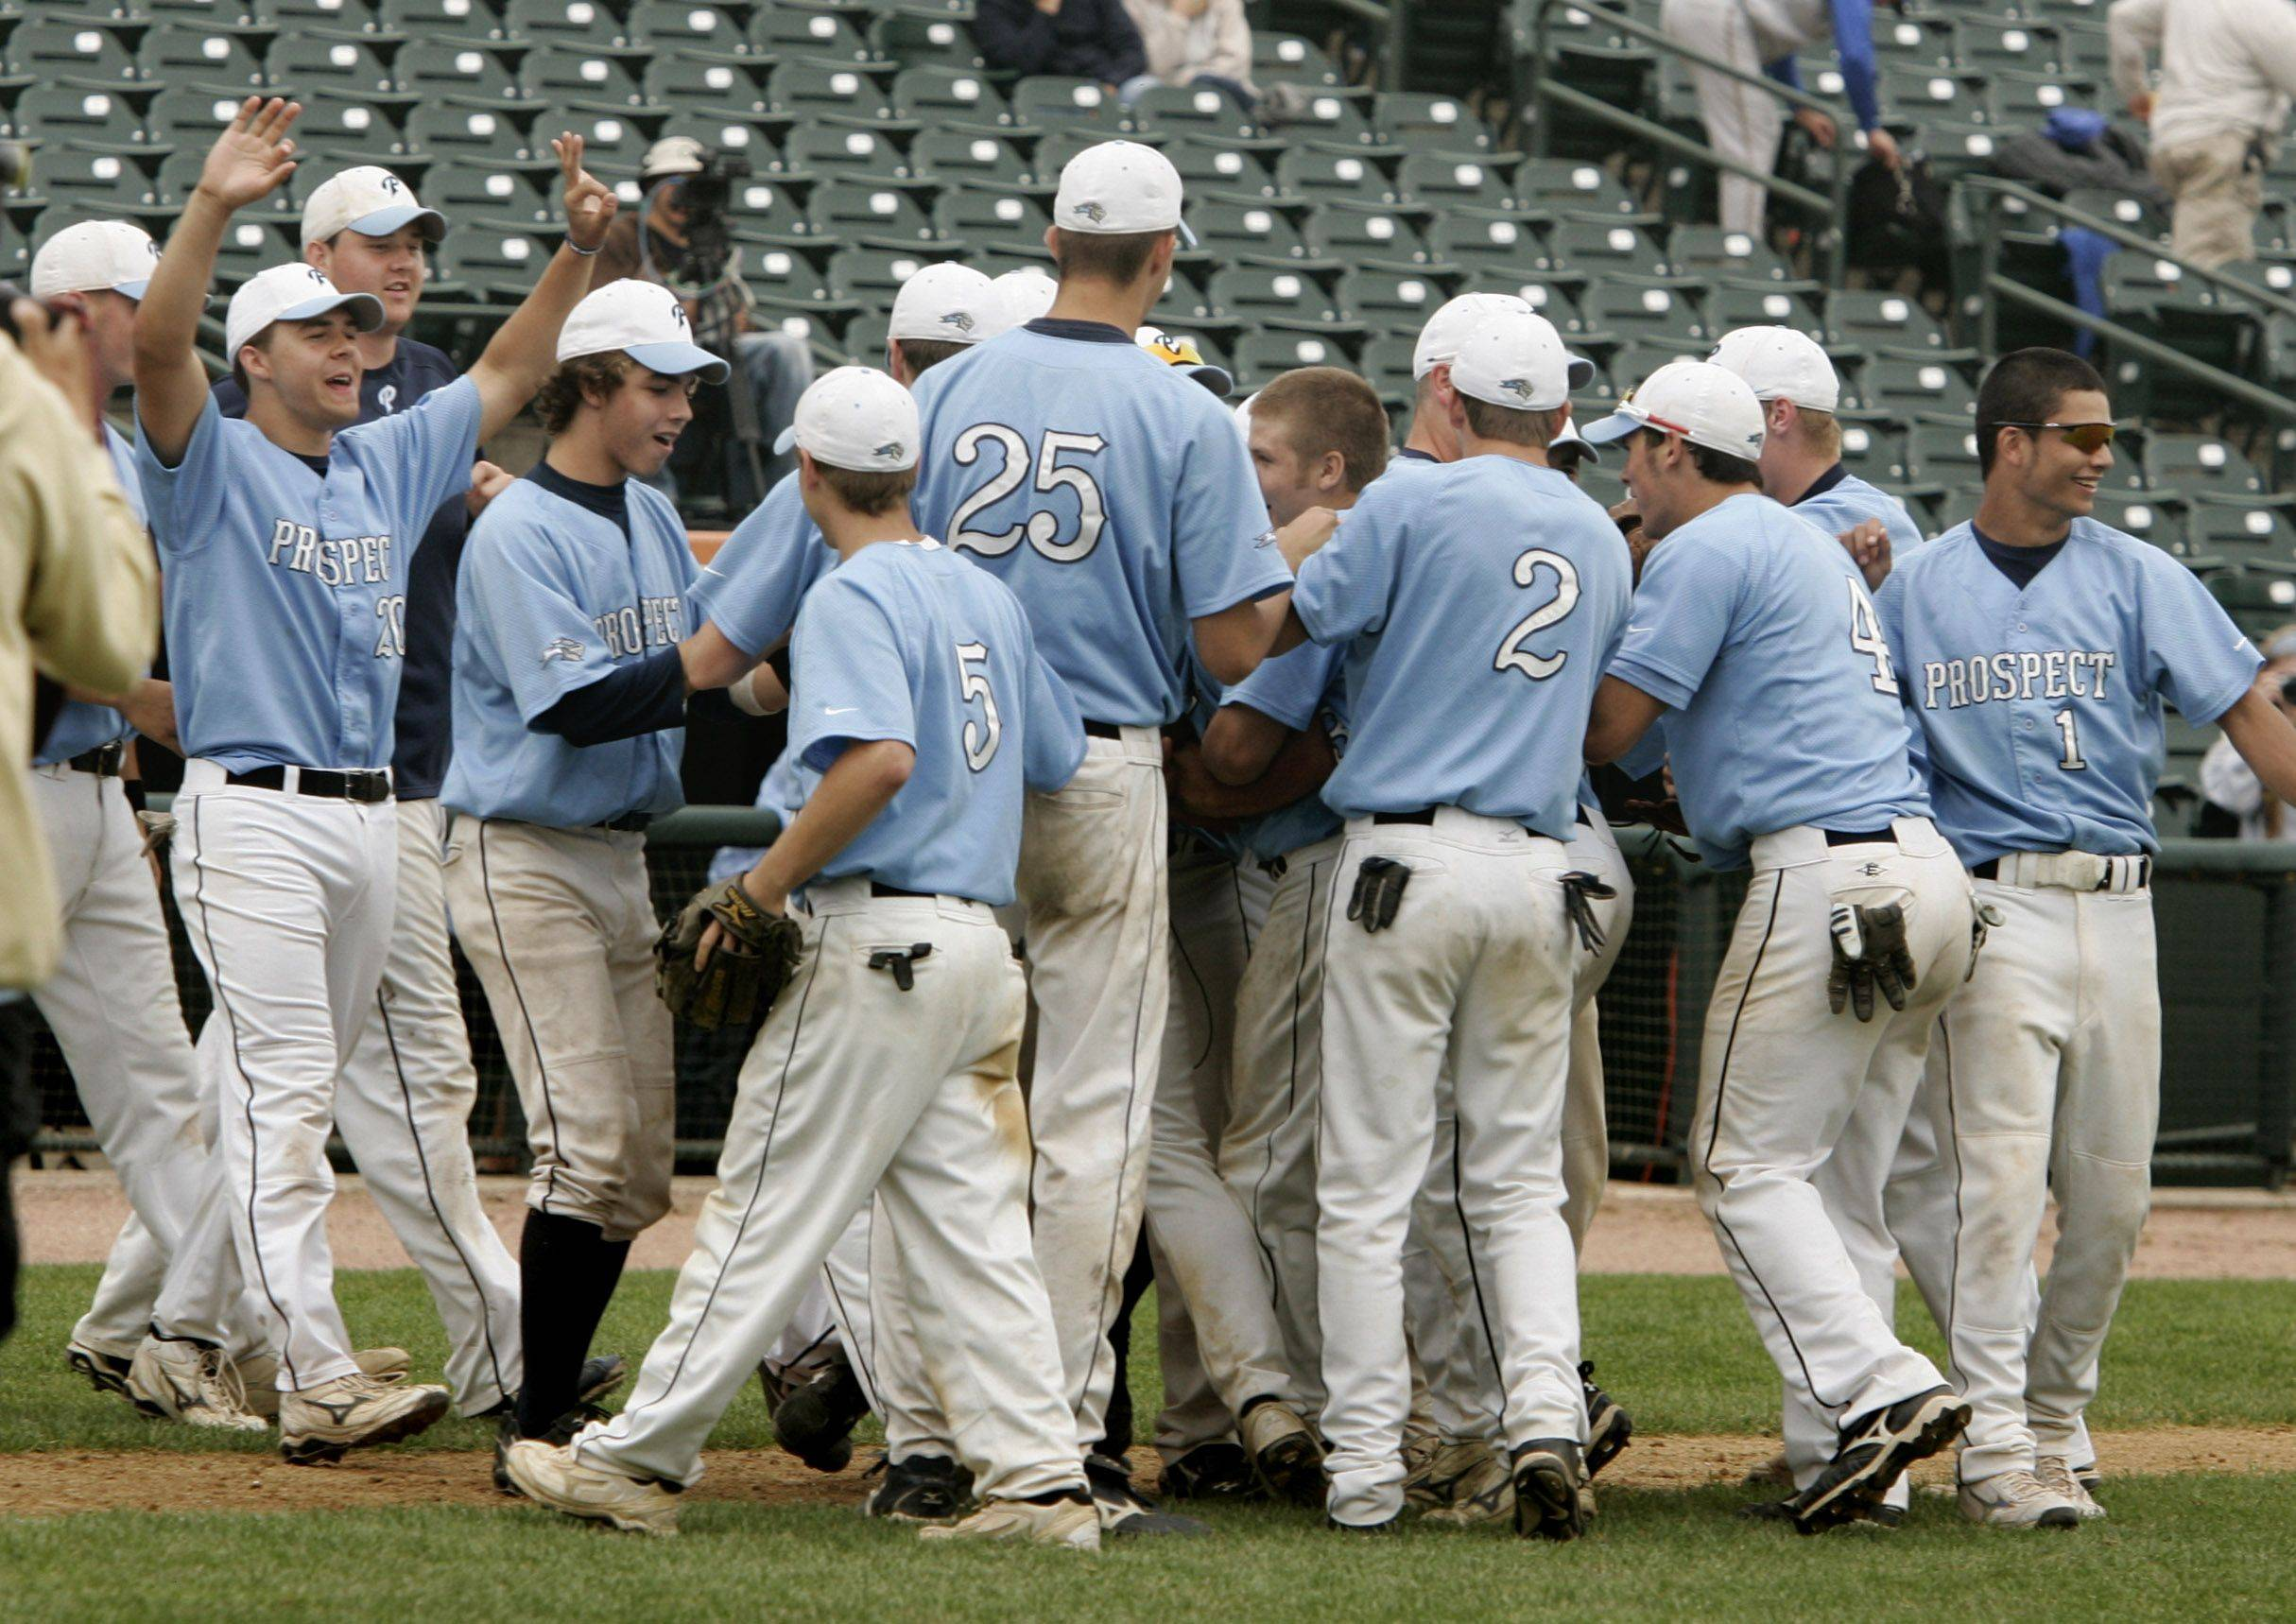 The Prospect baseball team celebrates after defeating Mt. Carmel during the boys high school baseball game Saturday in the Class 4A 3rd place game at Silver Cross Field in Joliet. Prospect defeated Mt. Carmel 2-1 to win third place in the state.